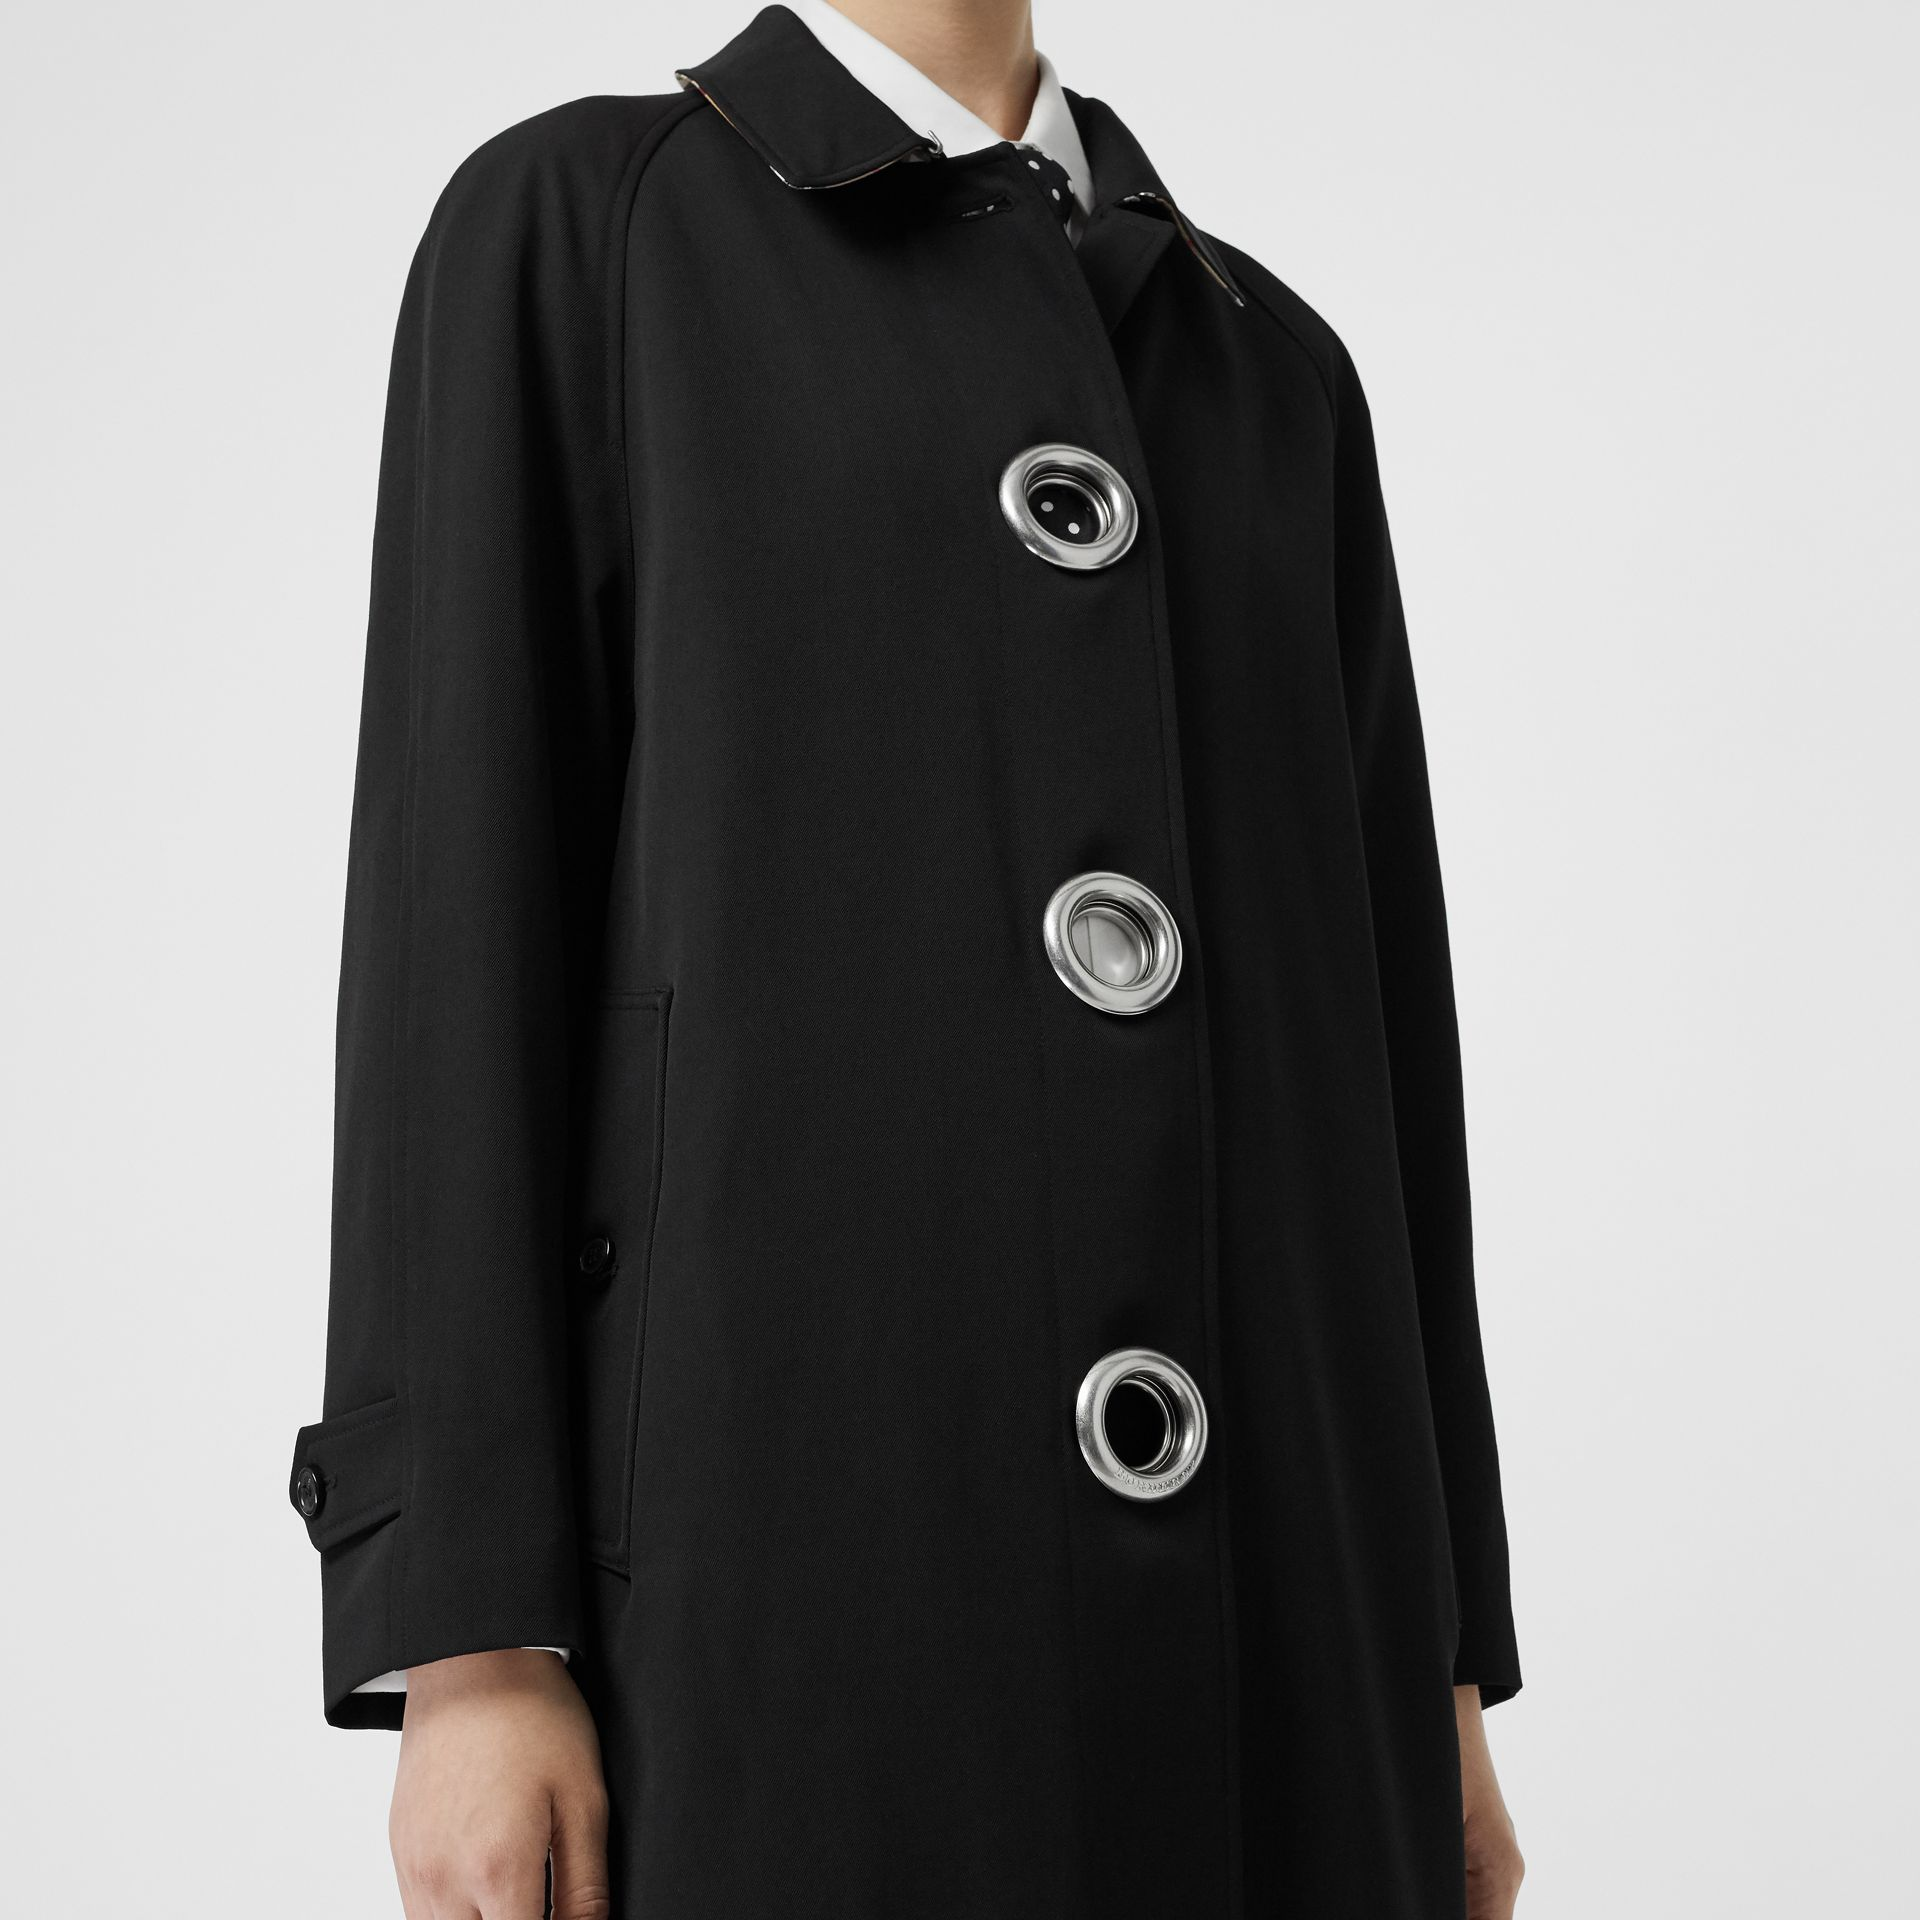 Grommet Detail Wool Gabardine Car Coat in Black - Women | Burberry Canada - gallery image 5